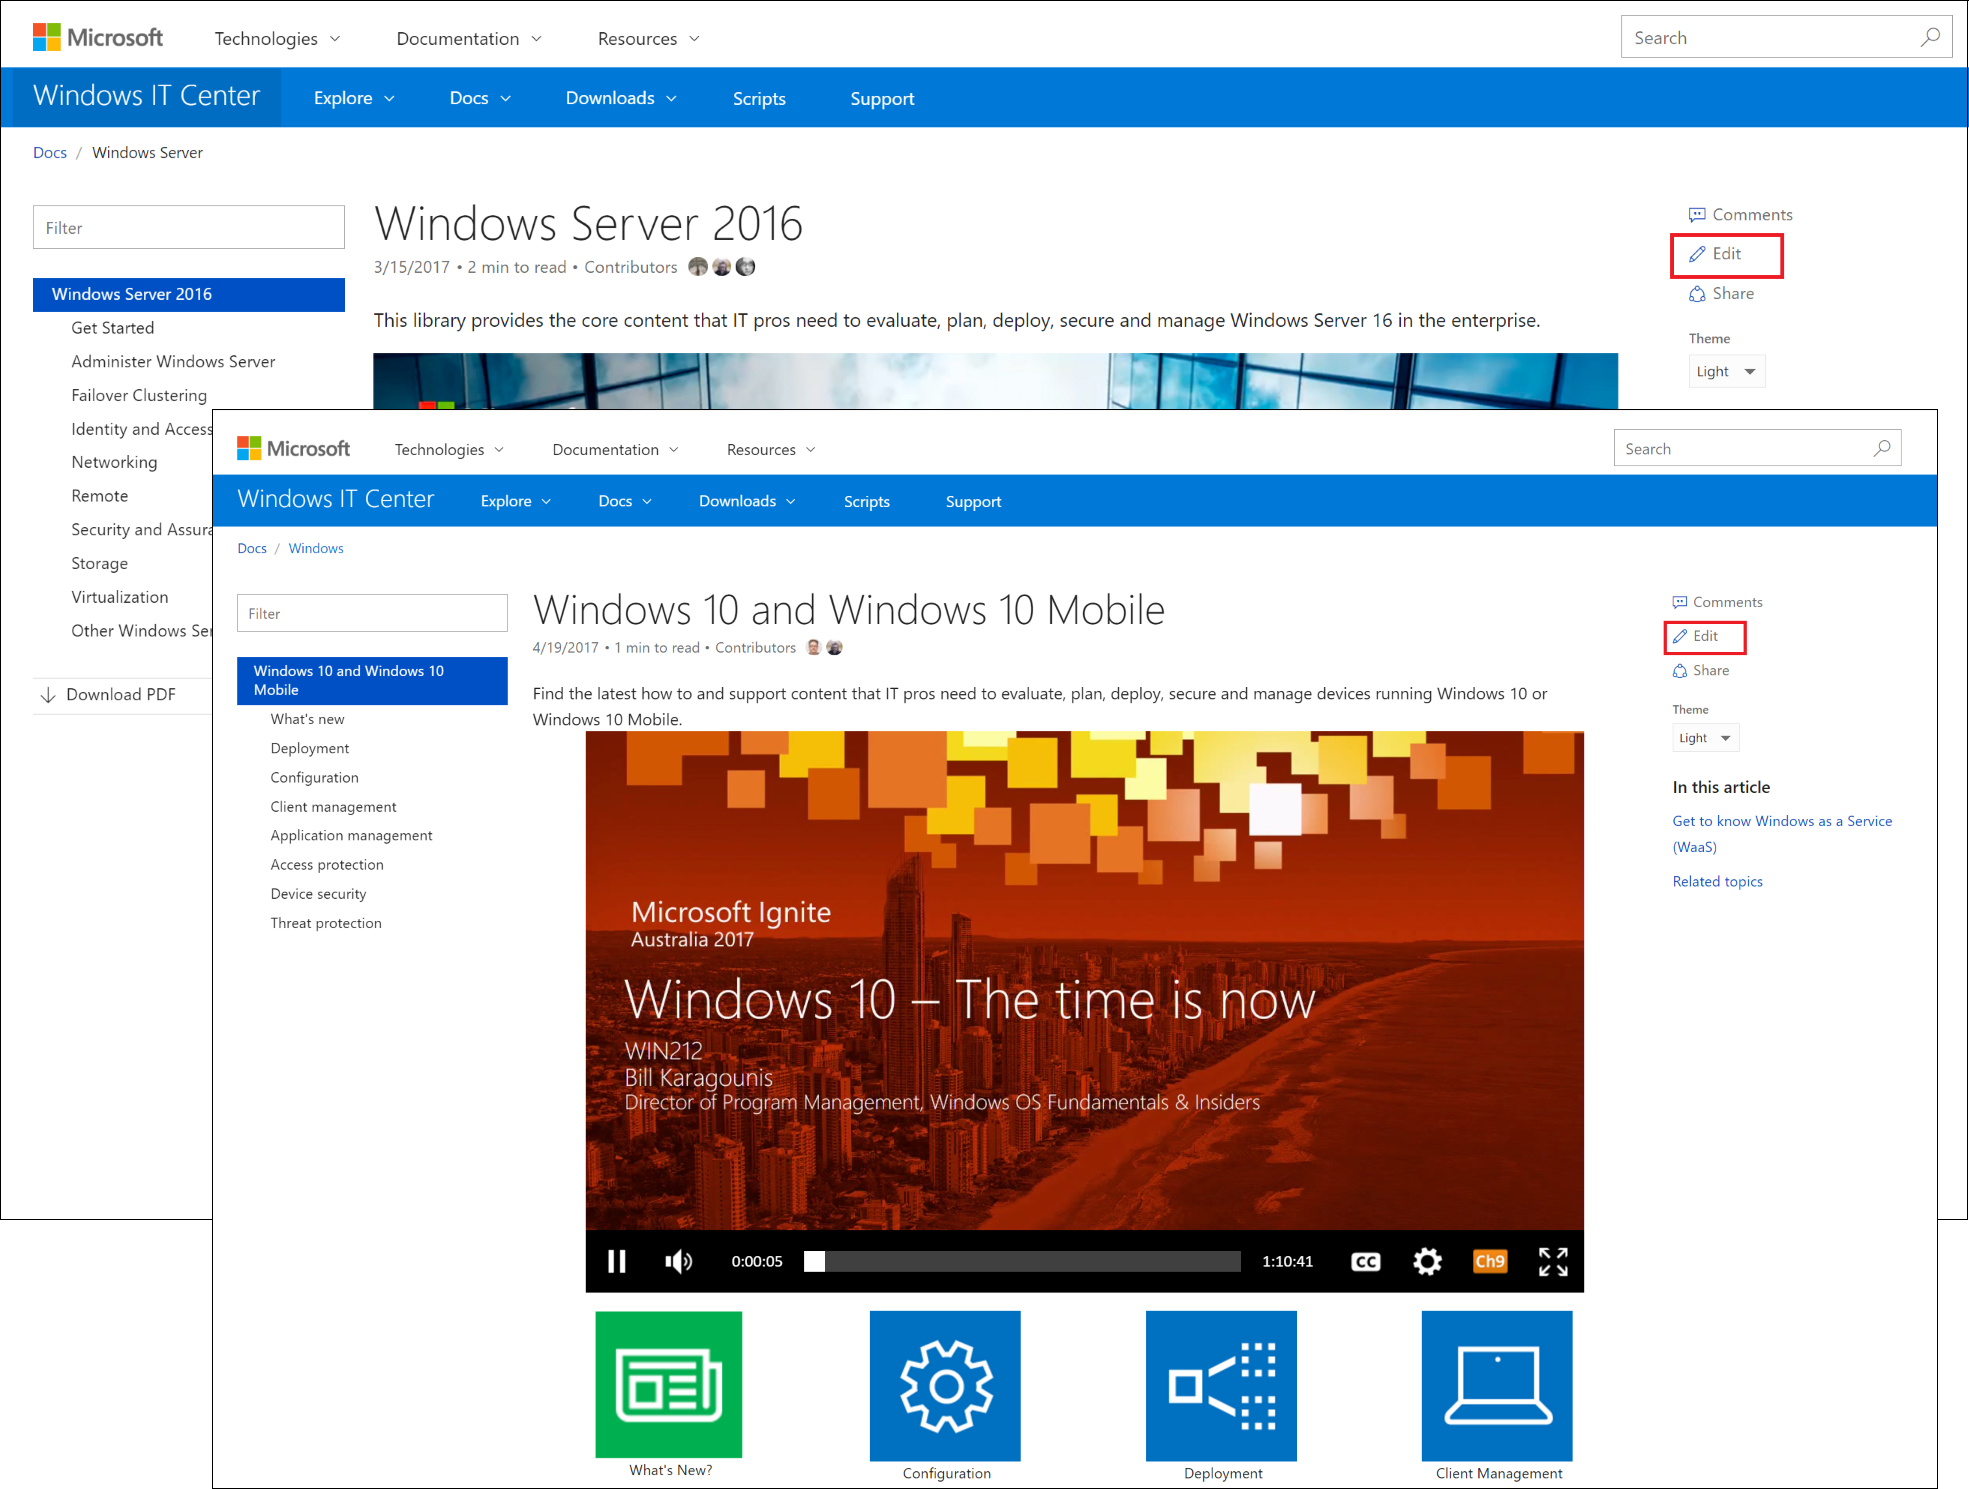 windows server 2016 and windows 10 it pro docs are now on